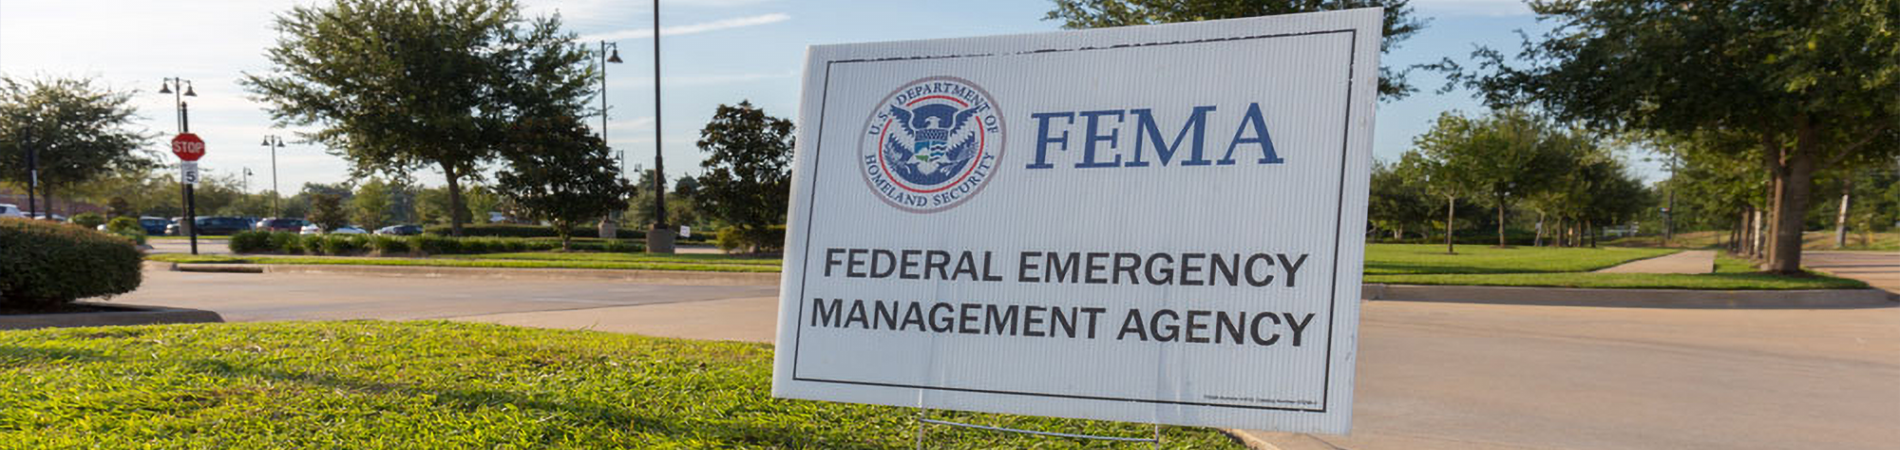 """Senior Executive Advisor Zimmerman On """"BRIC Expanding The Concepts Of Federal Pre-Disaster Mitigation"""" In Emergency Management Magazine"""